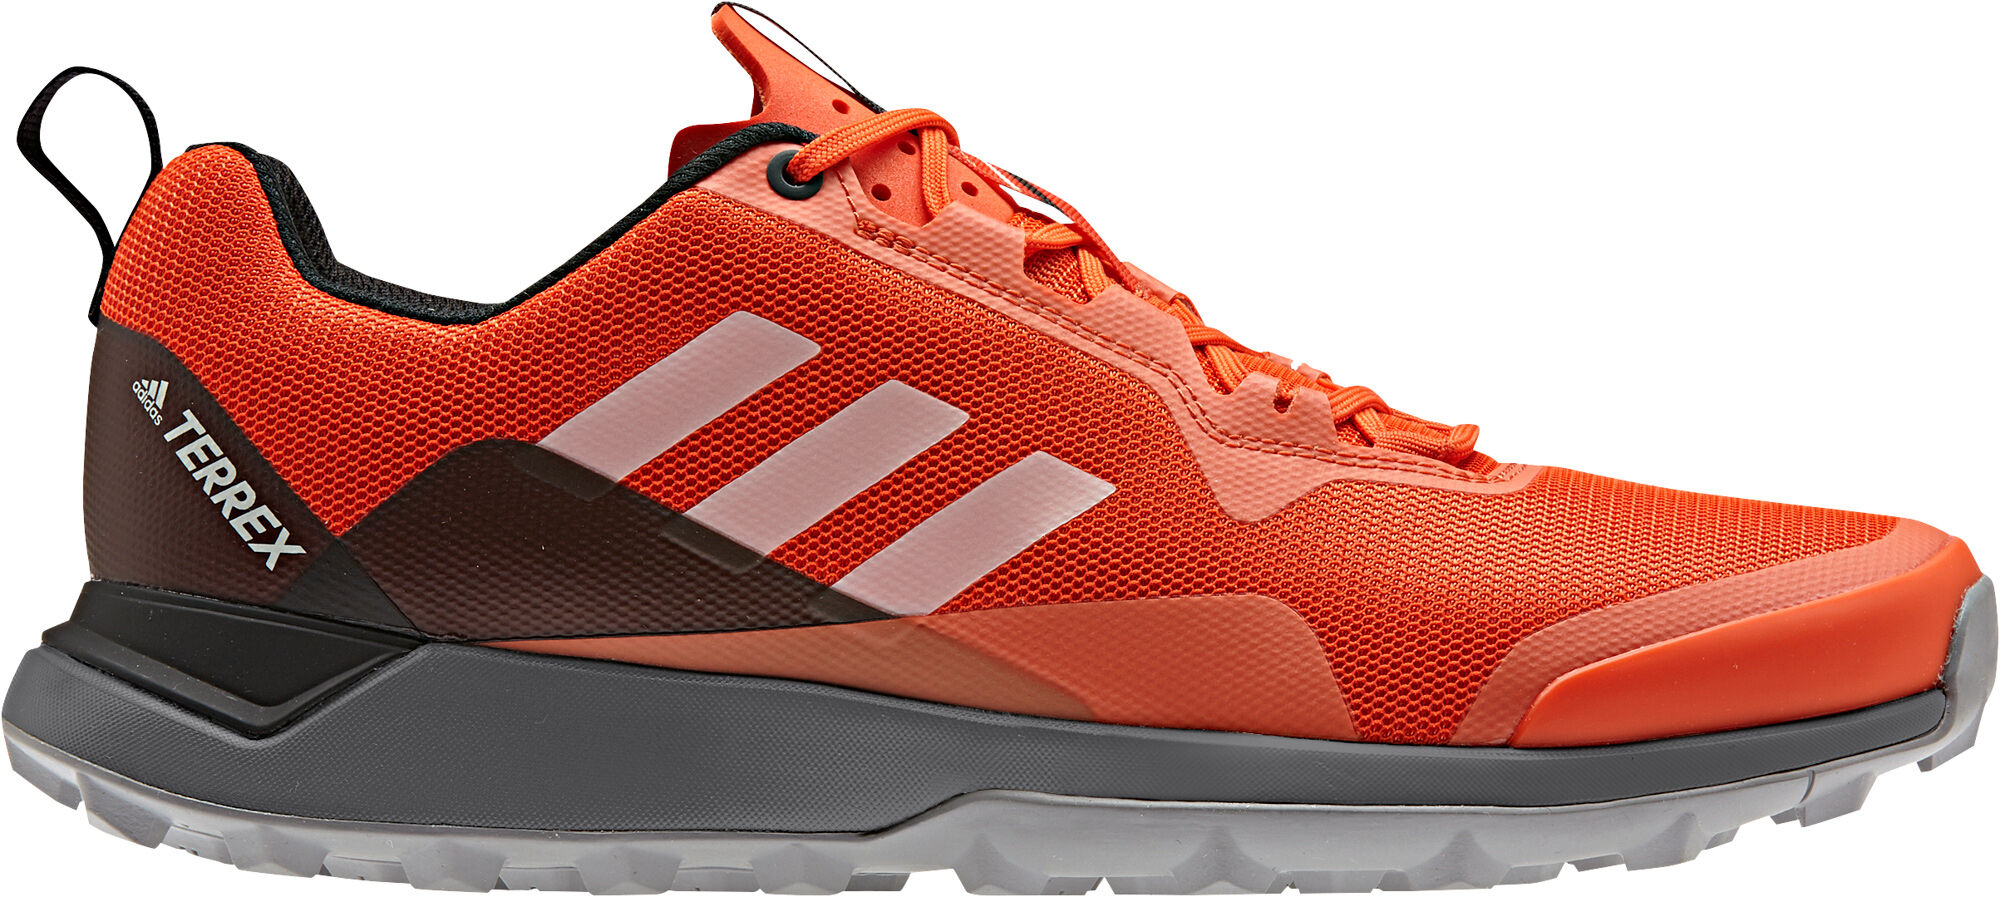 Baratas Ofertas Adidas Running Intersport De Outlet Zapatillas bgy7f6